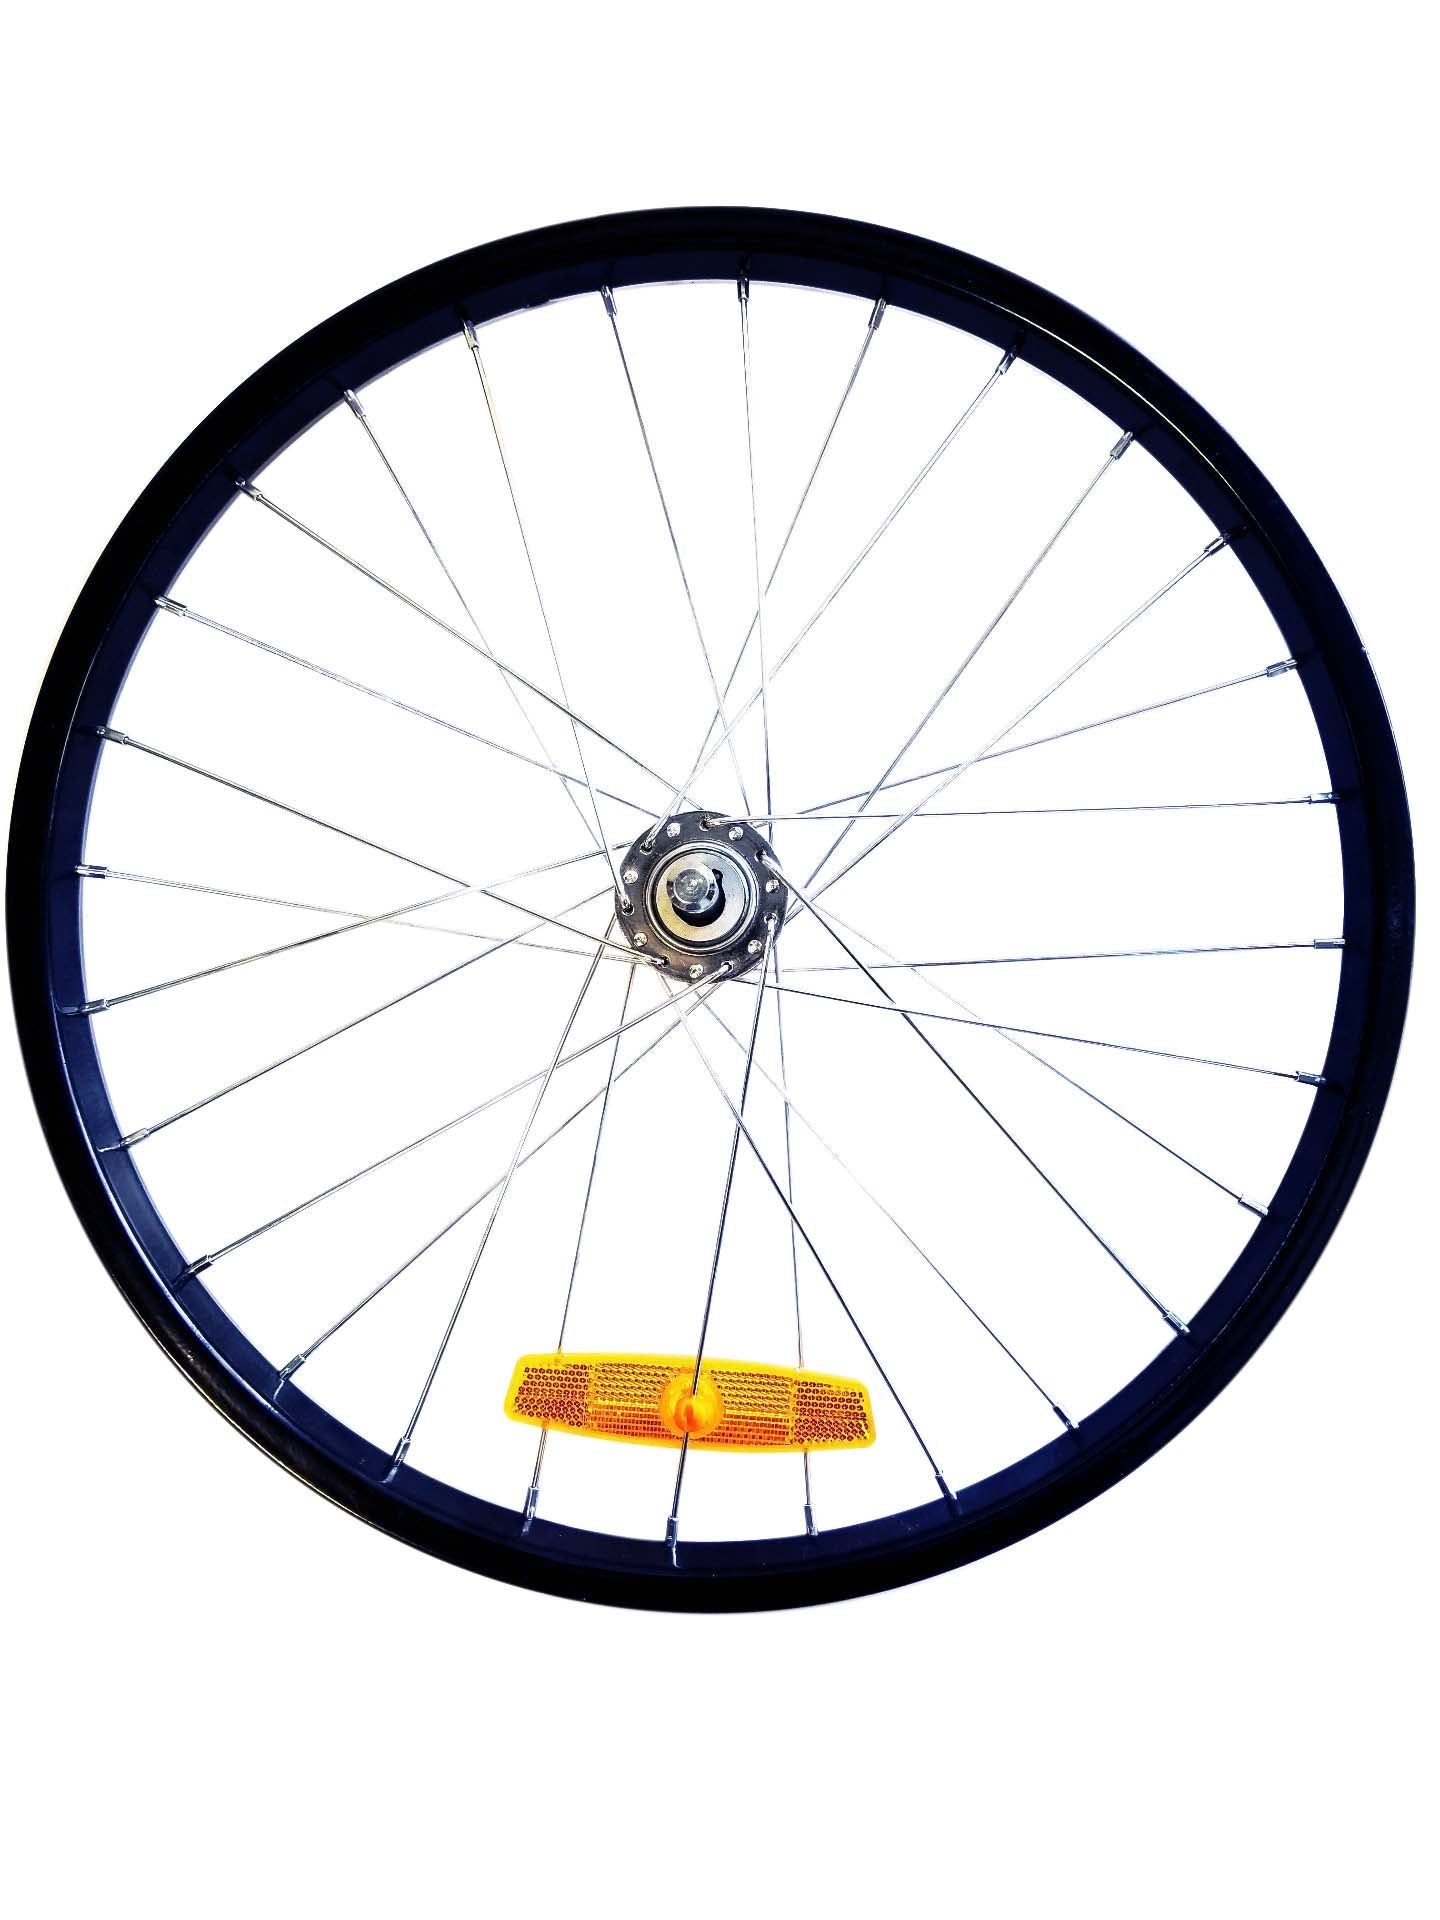 "Rear Wheel Assembly, 20"" (Sold Out)"